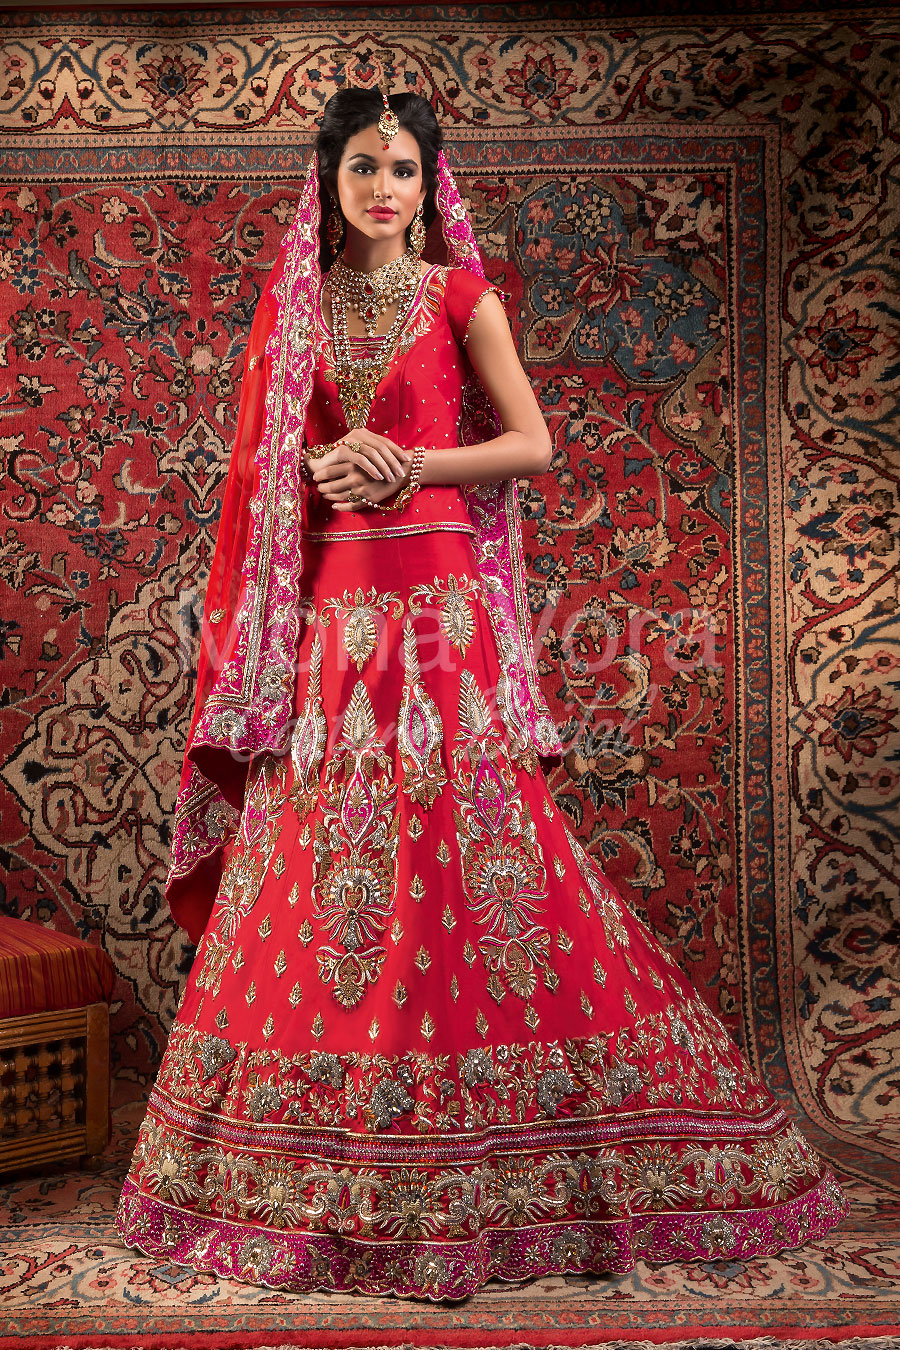 Indian Wedding Dresses & Bridal Dresses - Large Range Of Ethnic ...